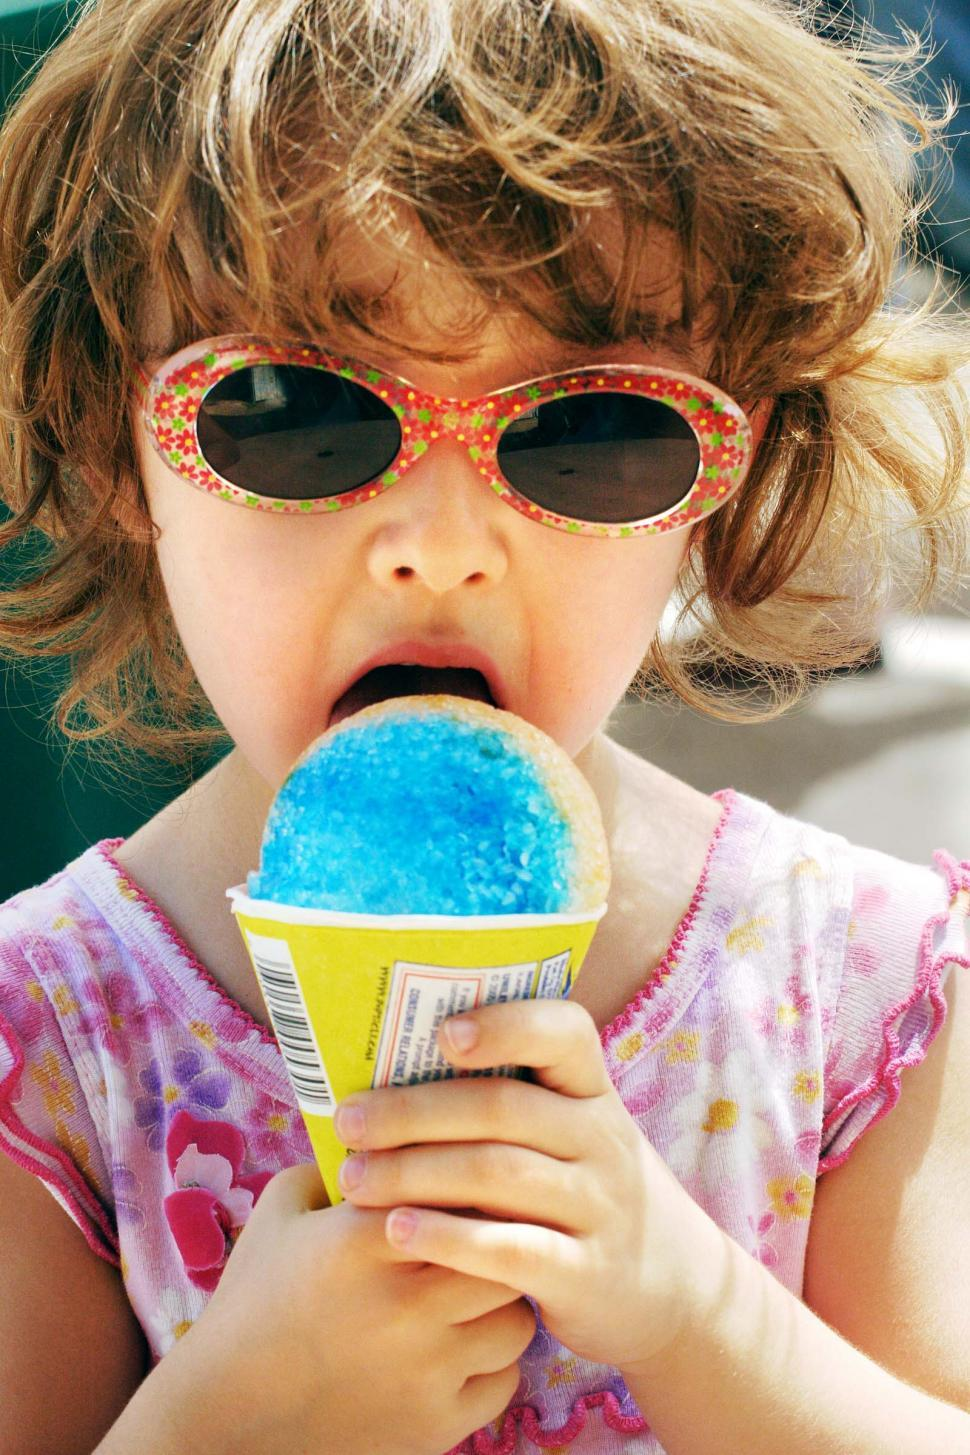 Download Free Stock Photo of Child eats snow cone